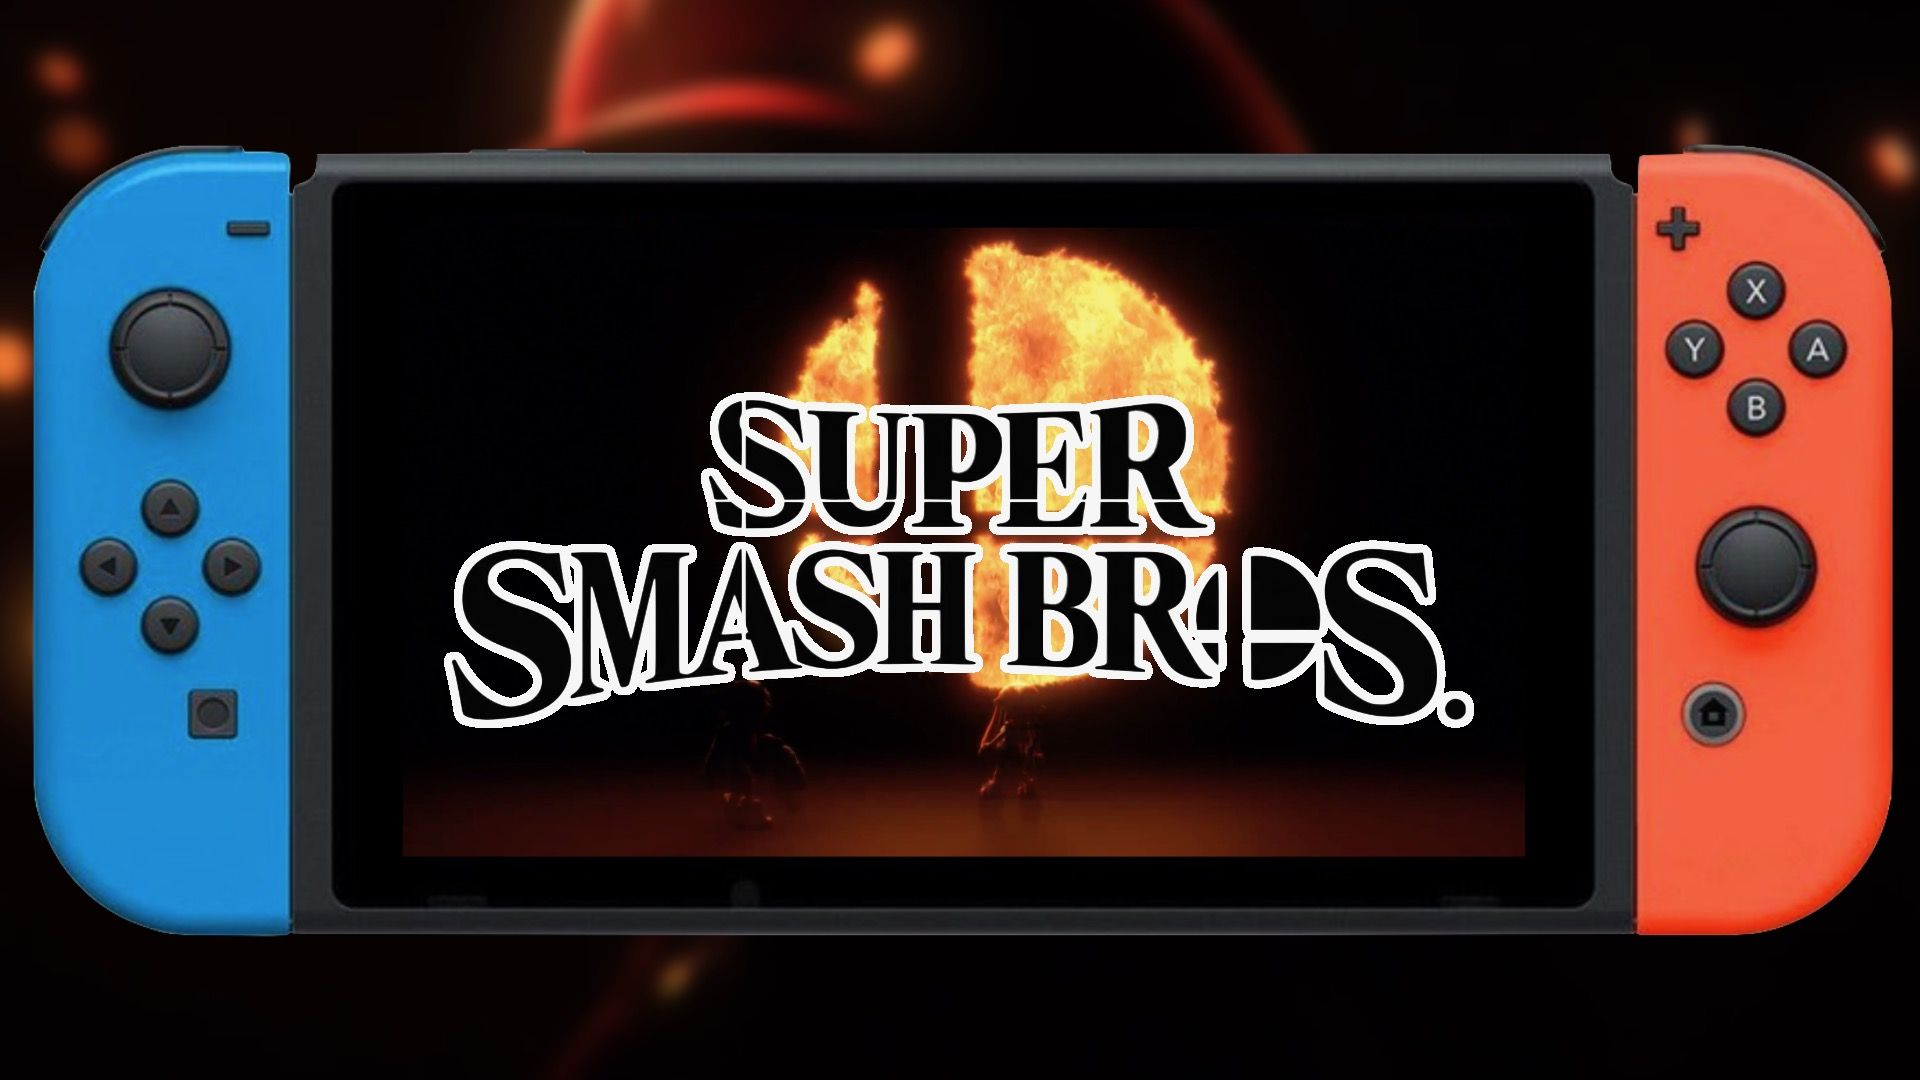 Awesome Chance to win Super Smash Bros on Nintendo Switch